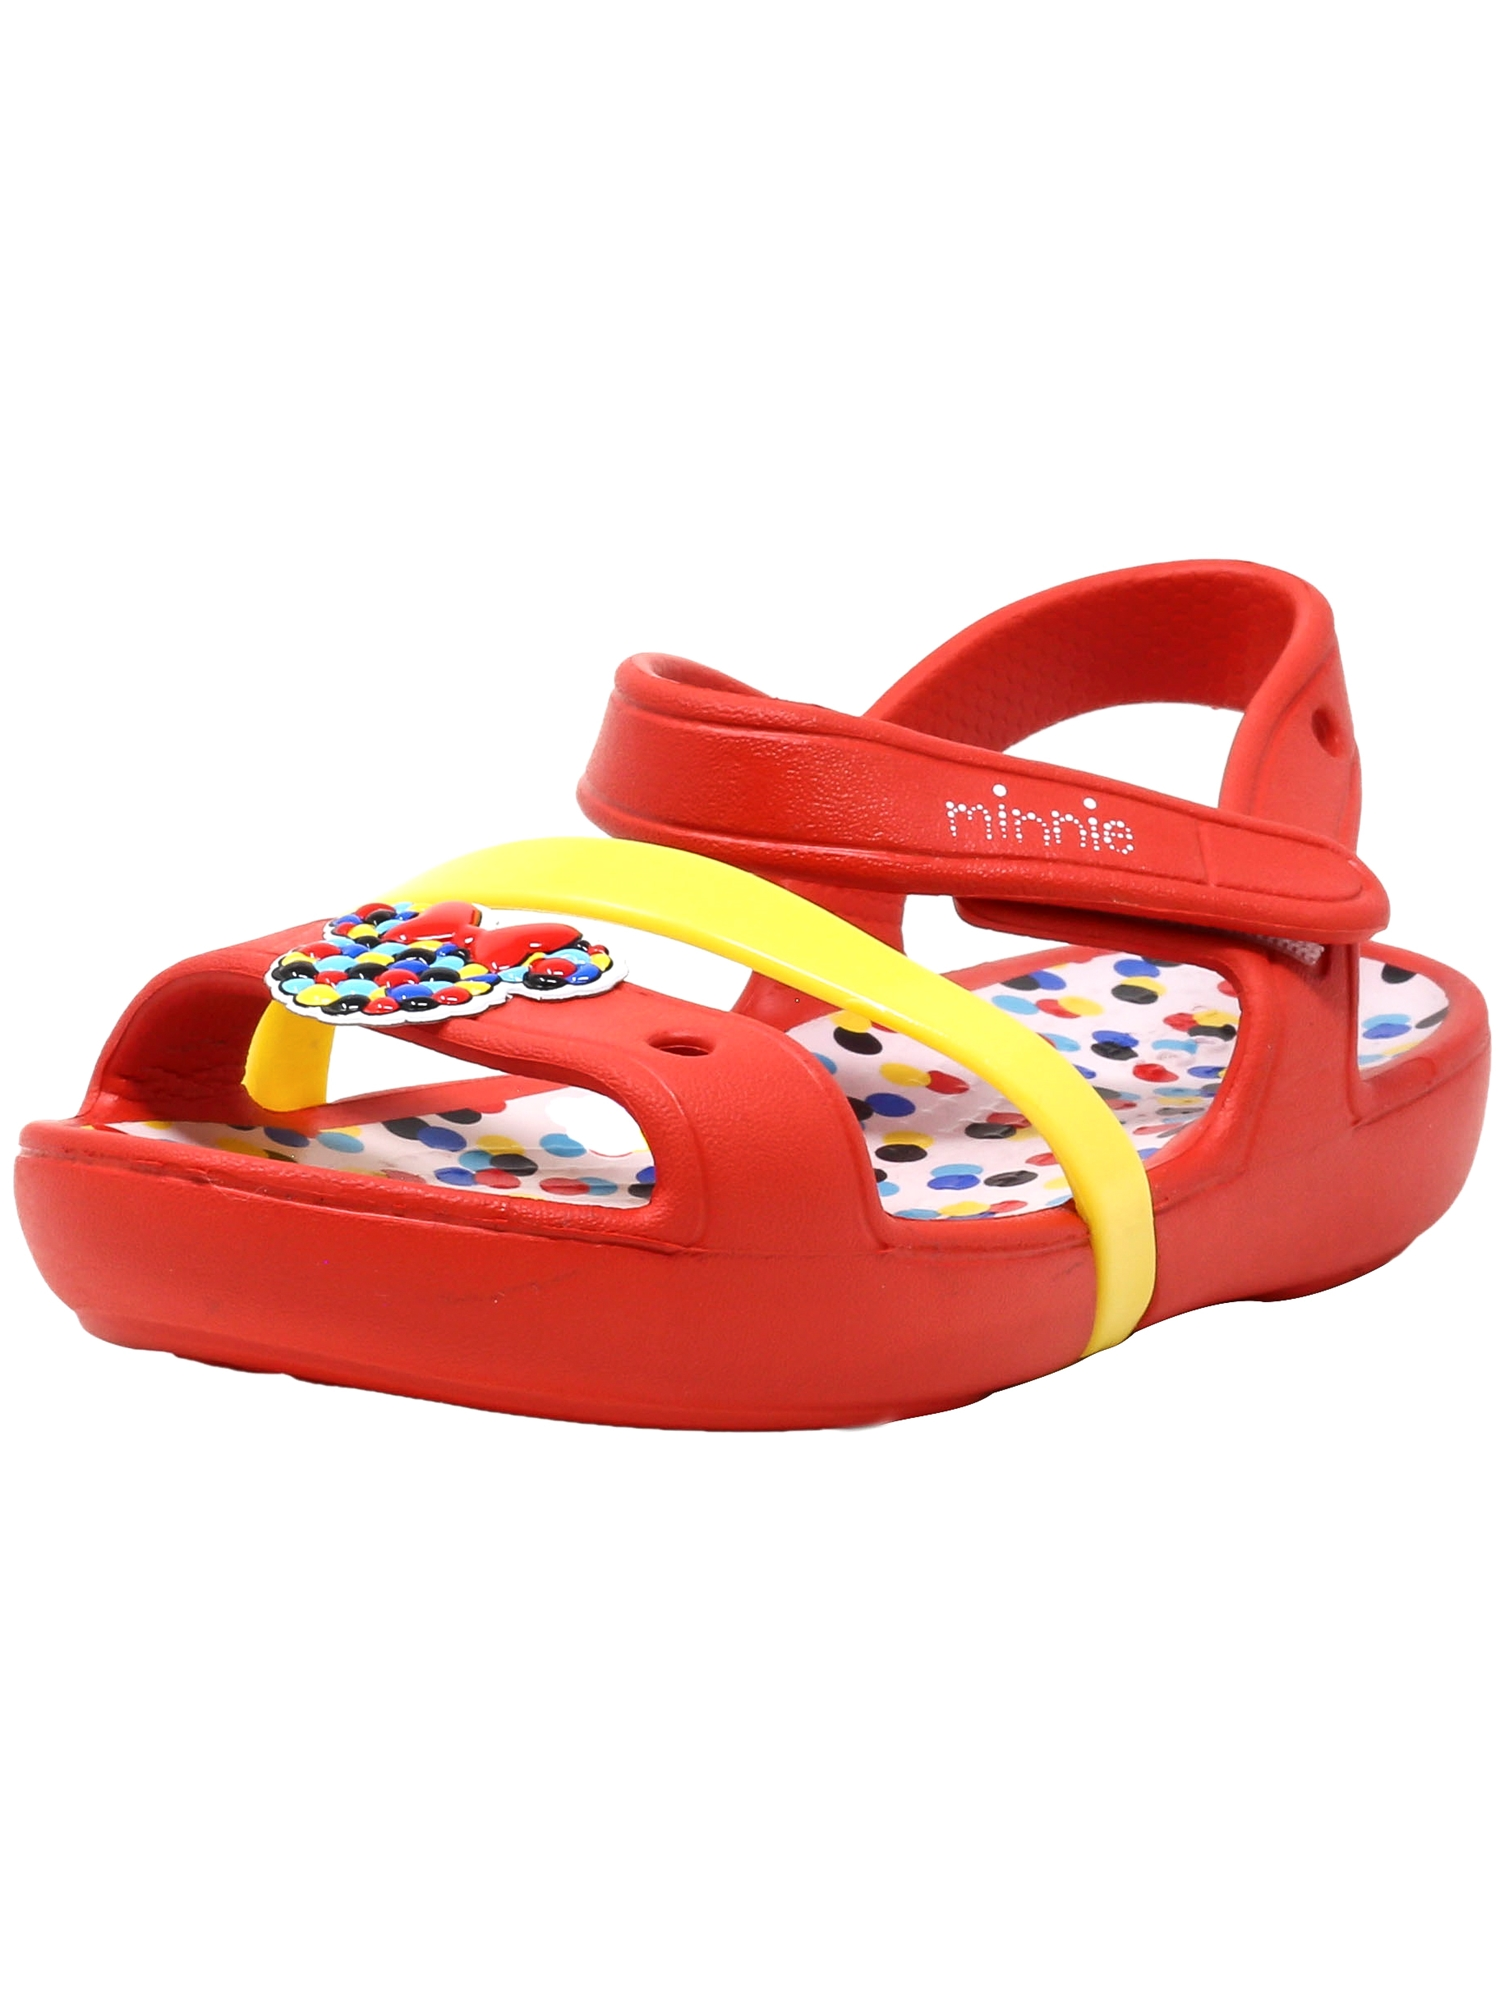 Crocs Lina Minnie Sandal Dots - 11M